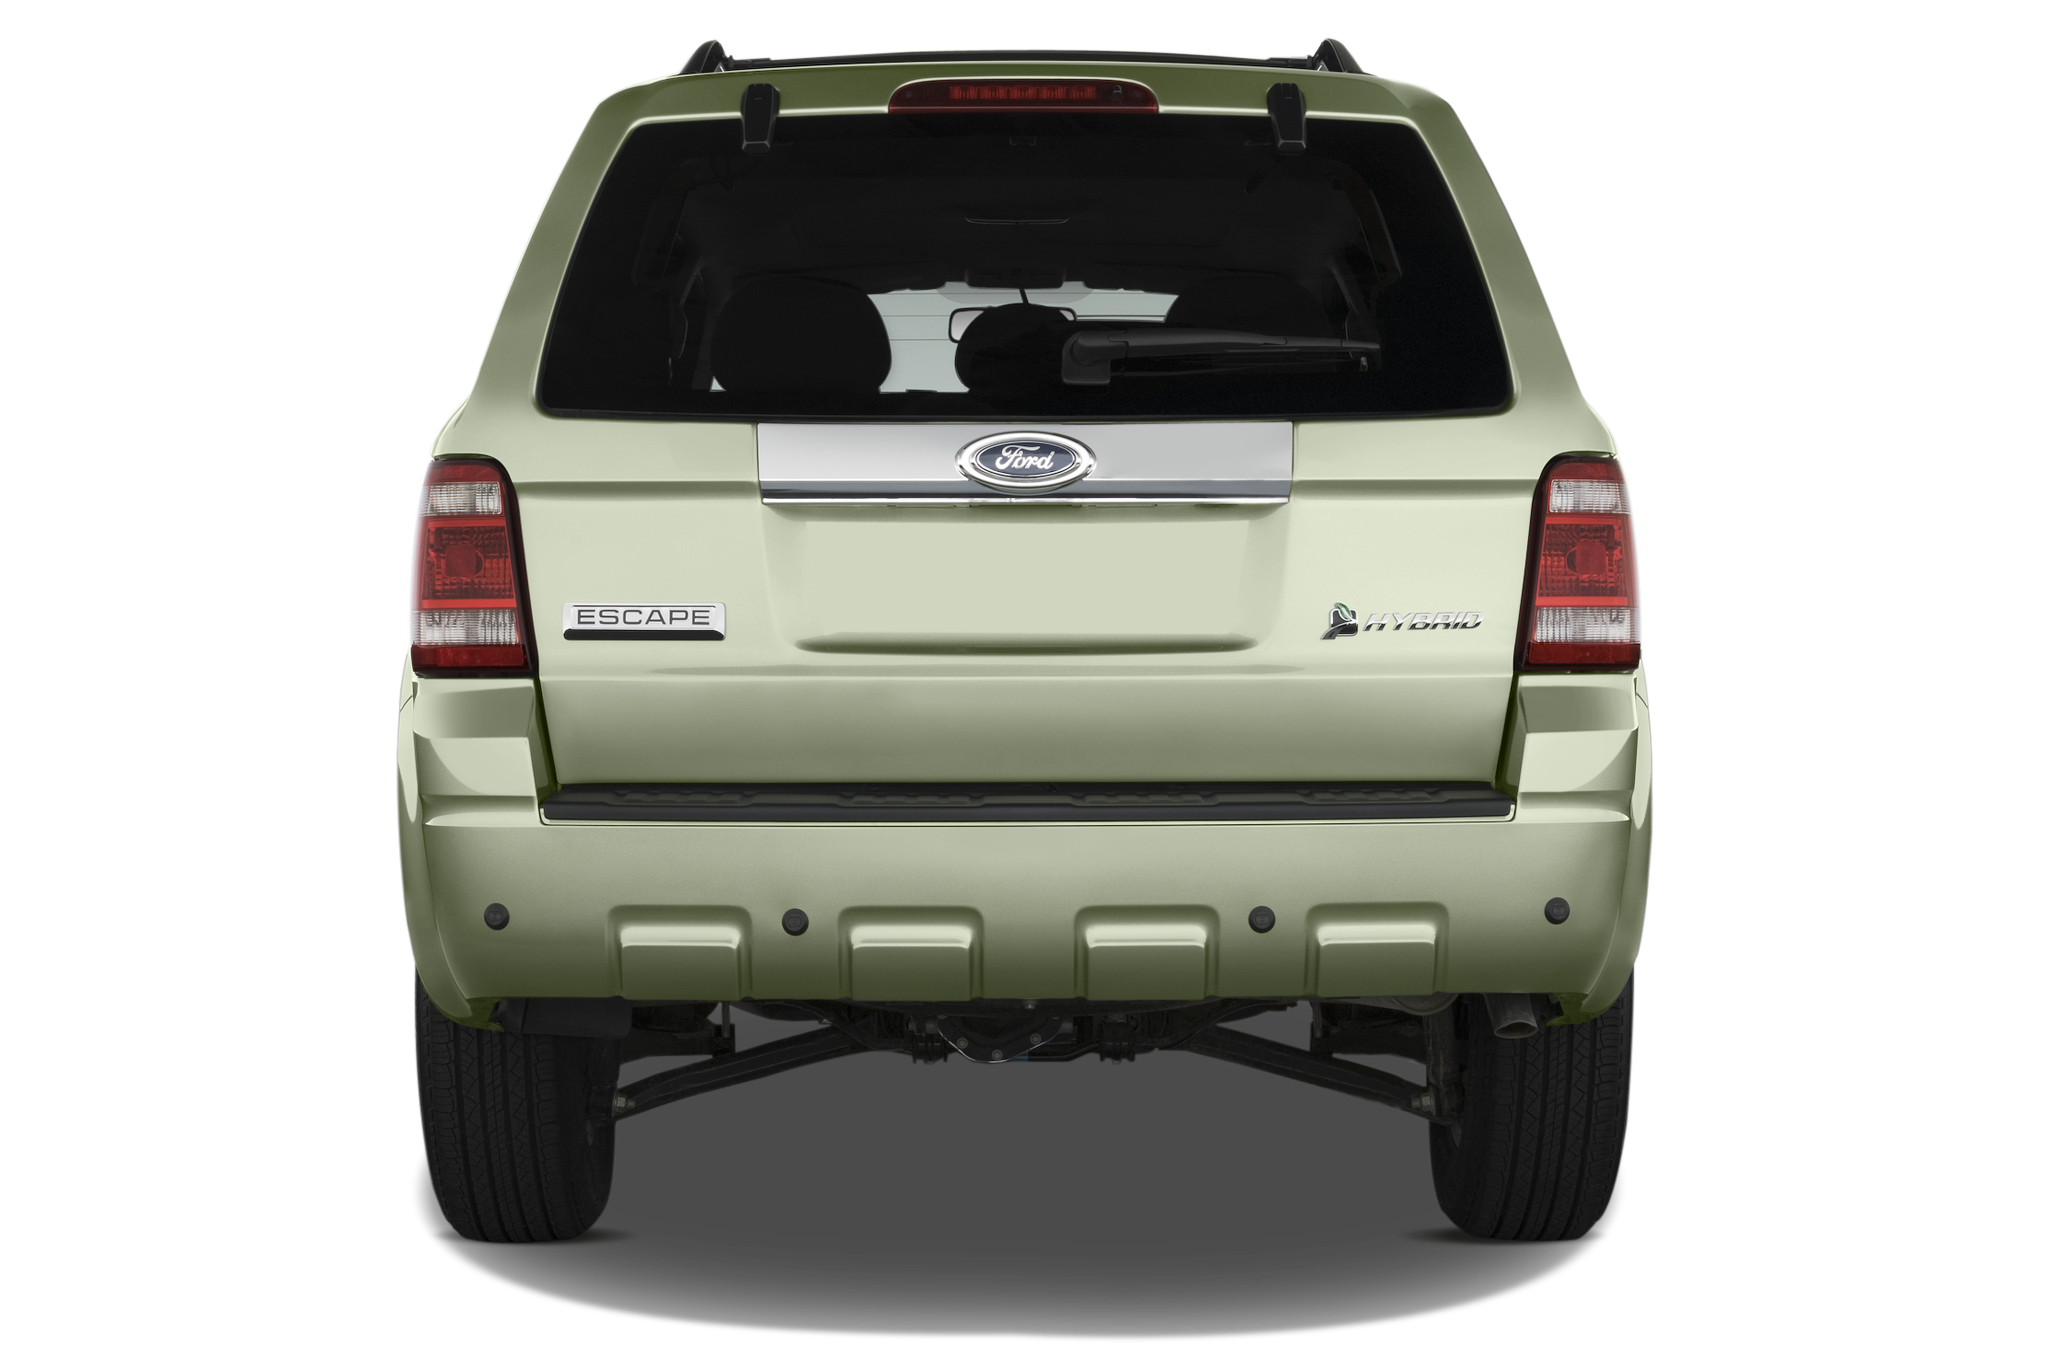 200 000 2010 2011 Ford Escape Mercury Mariners Investigated For Shattering Rear Window